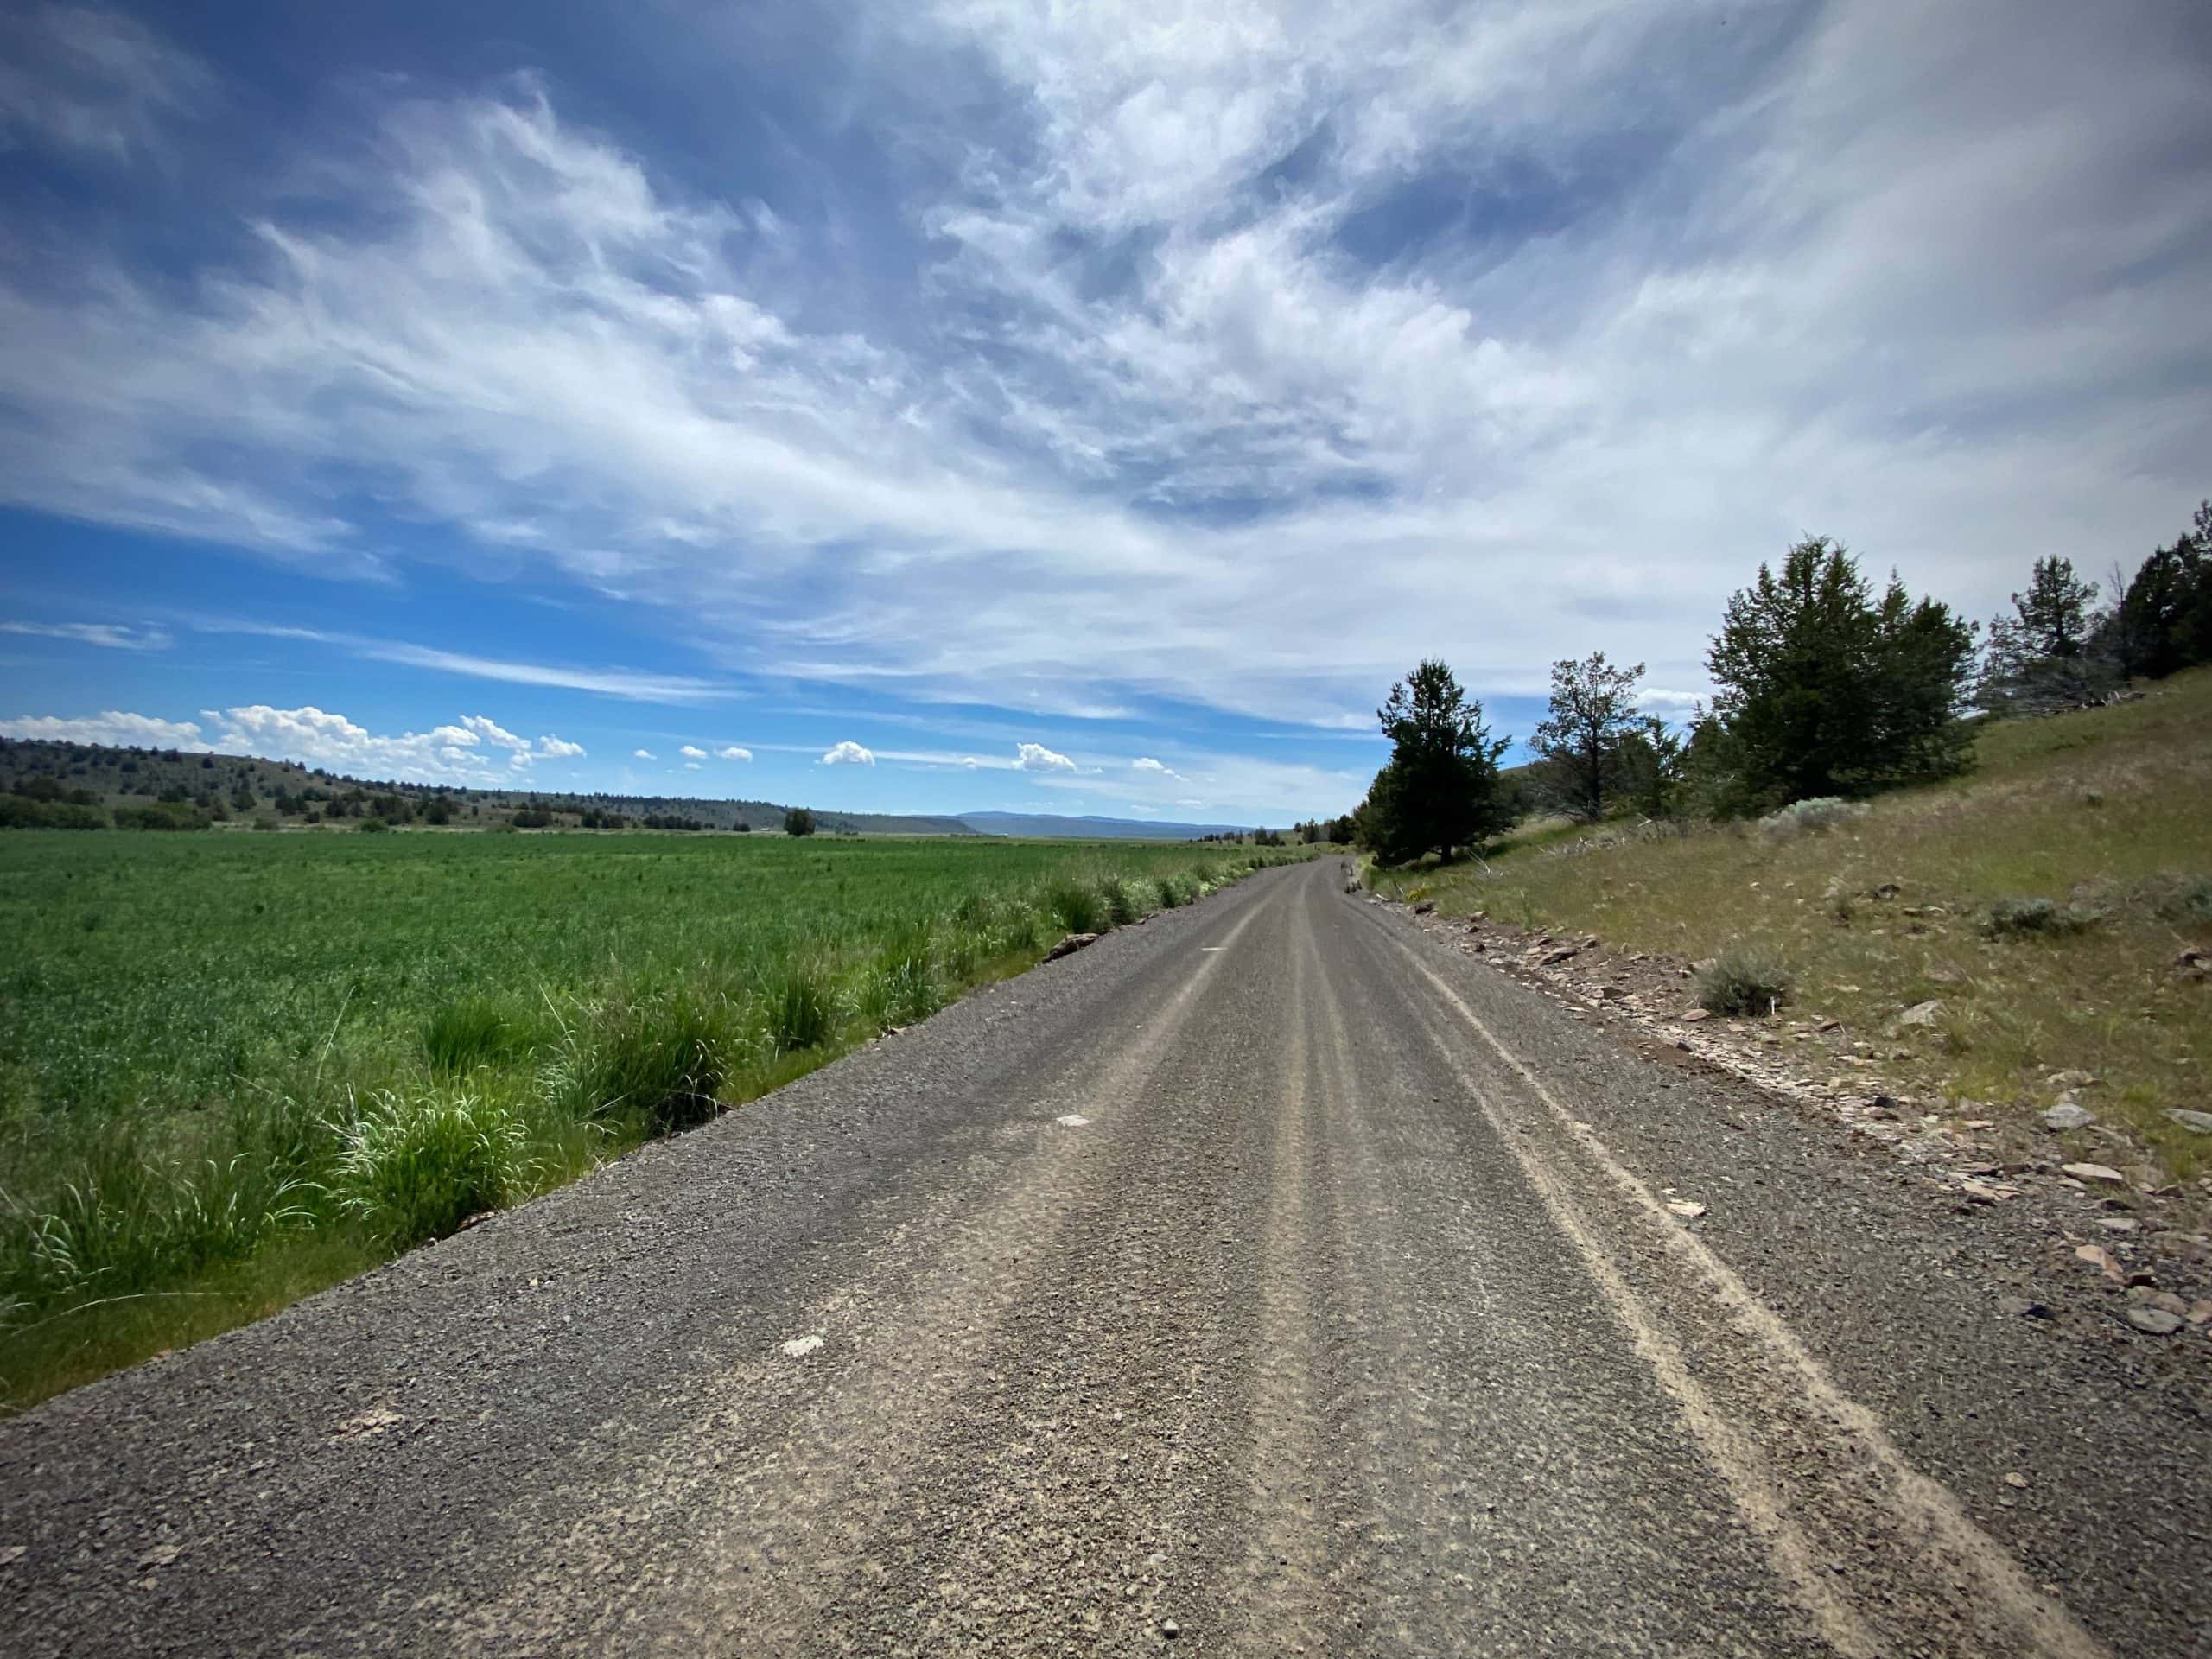 Gravel road leading into Paulina valley with green grasses.